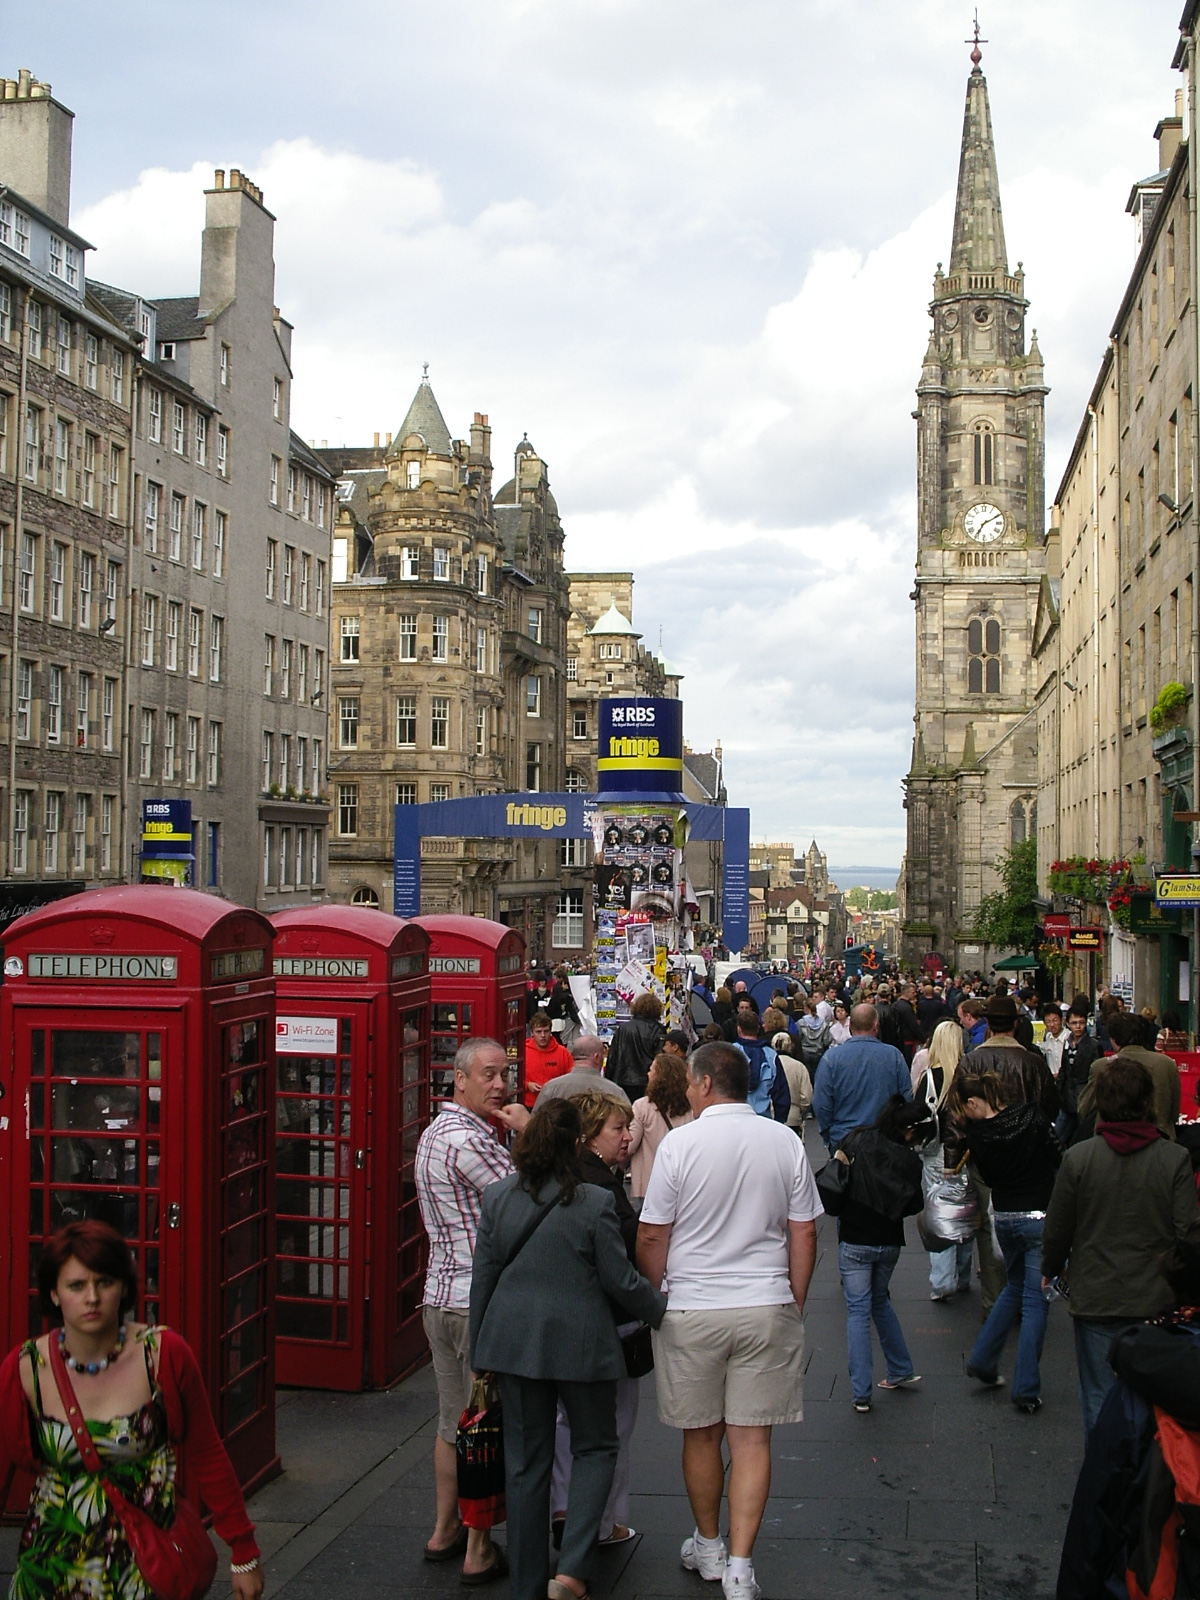 Scenary of Royal Mile, Edinburgh